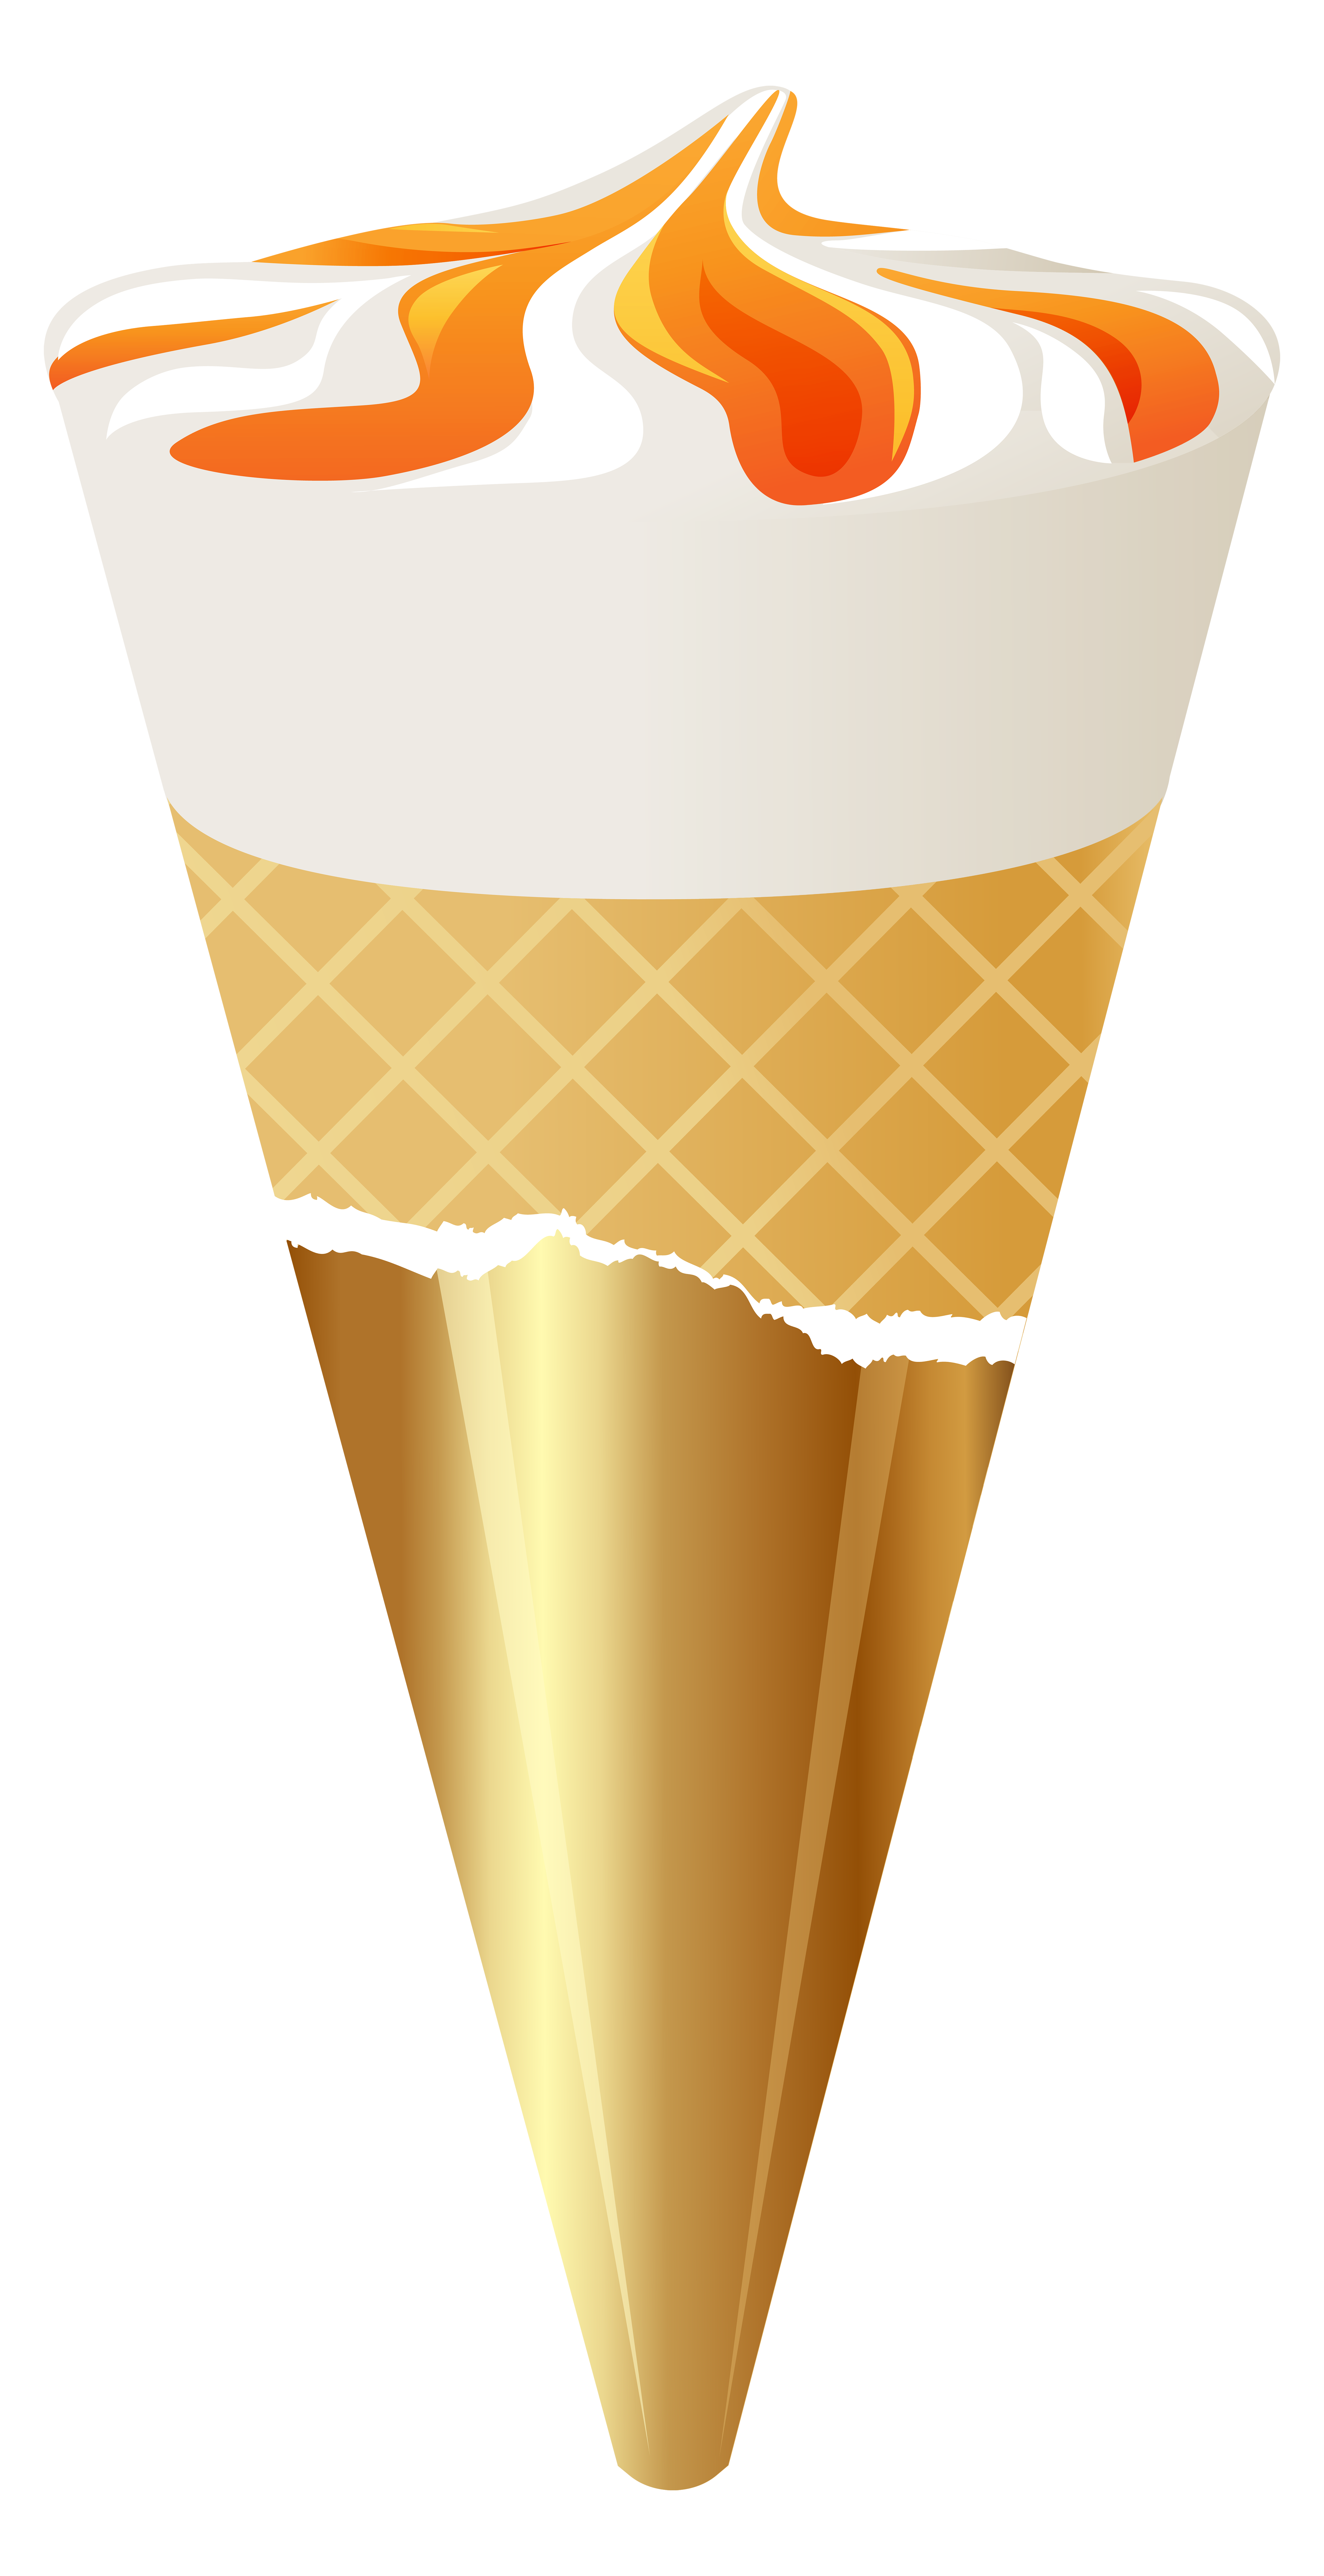 Clipart halloween ice cream. Cone transparent png clip